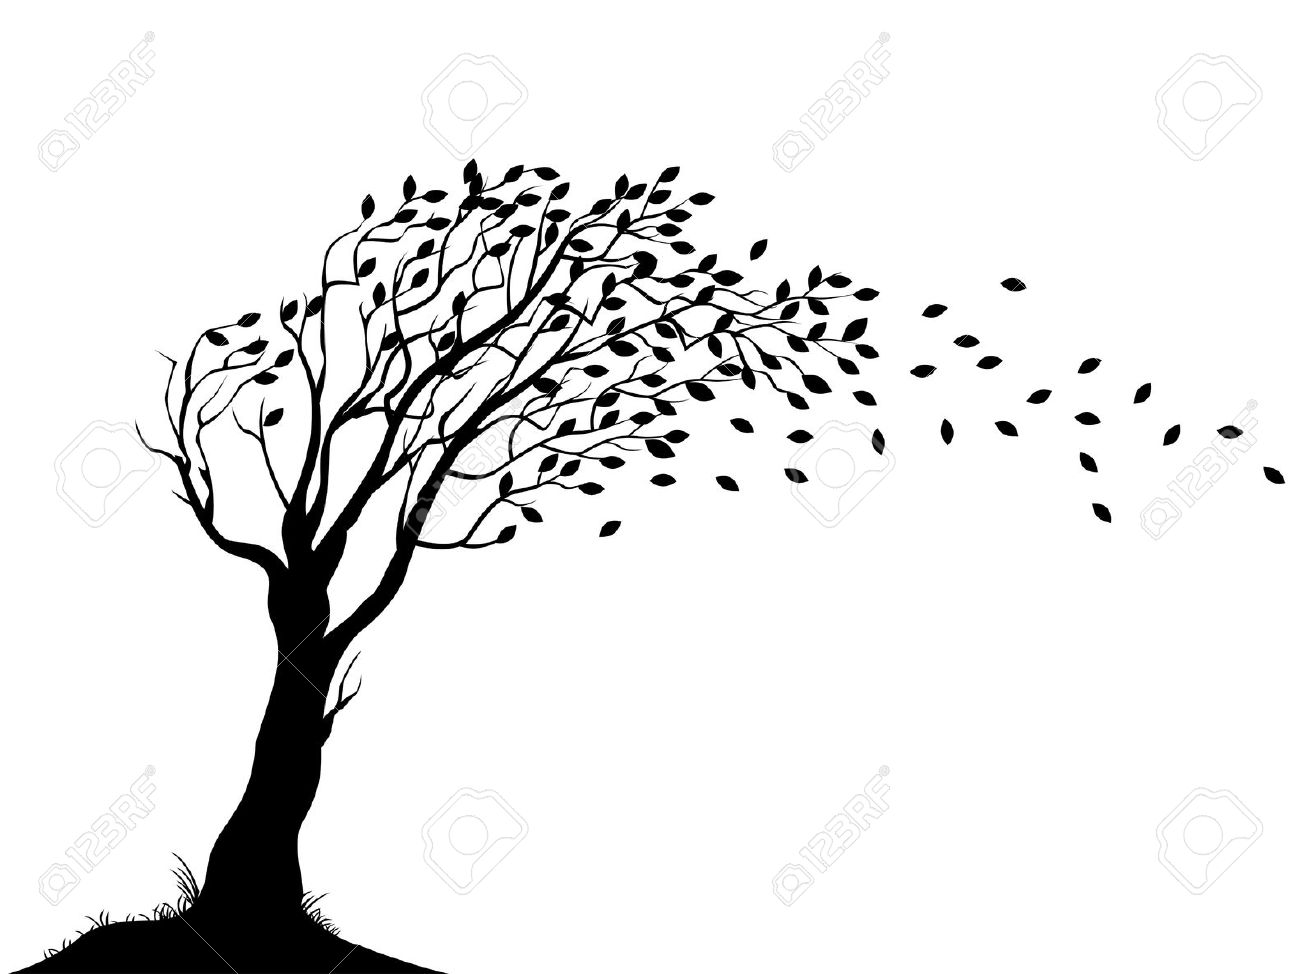 Leaf row silhouette clipart picture stock Leaf row silhouette clipart - ClipartFest picture stock